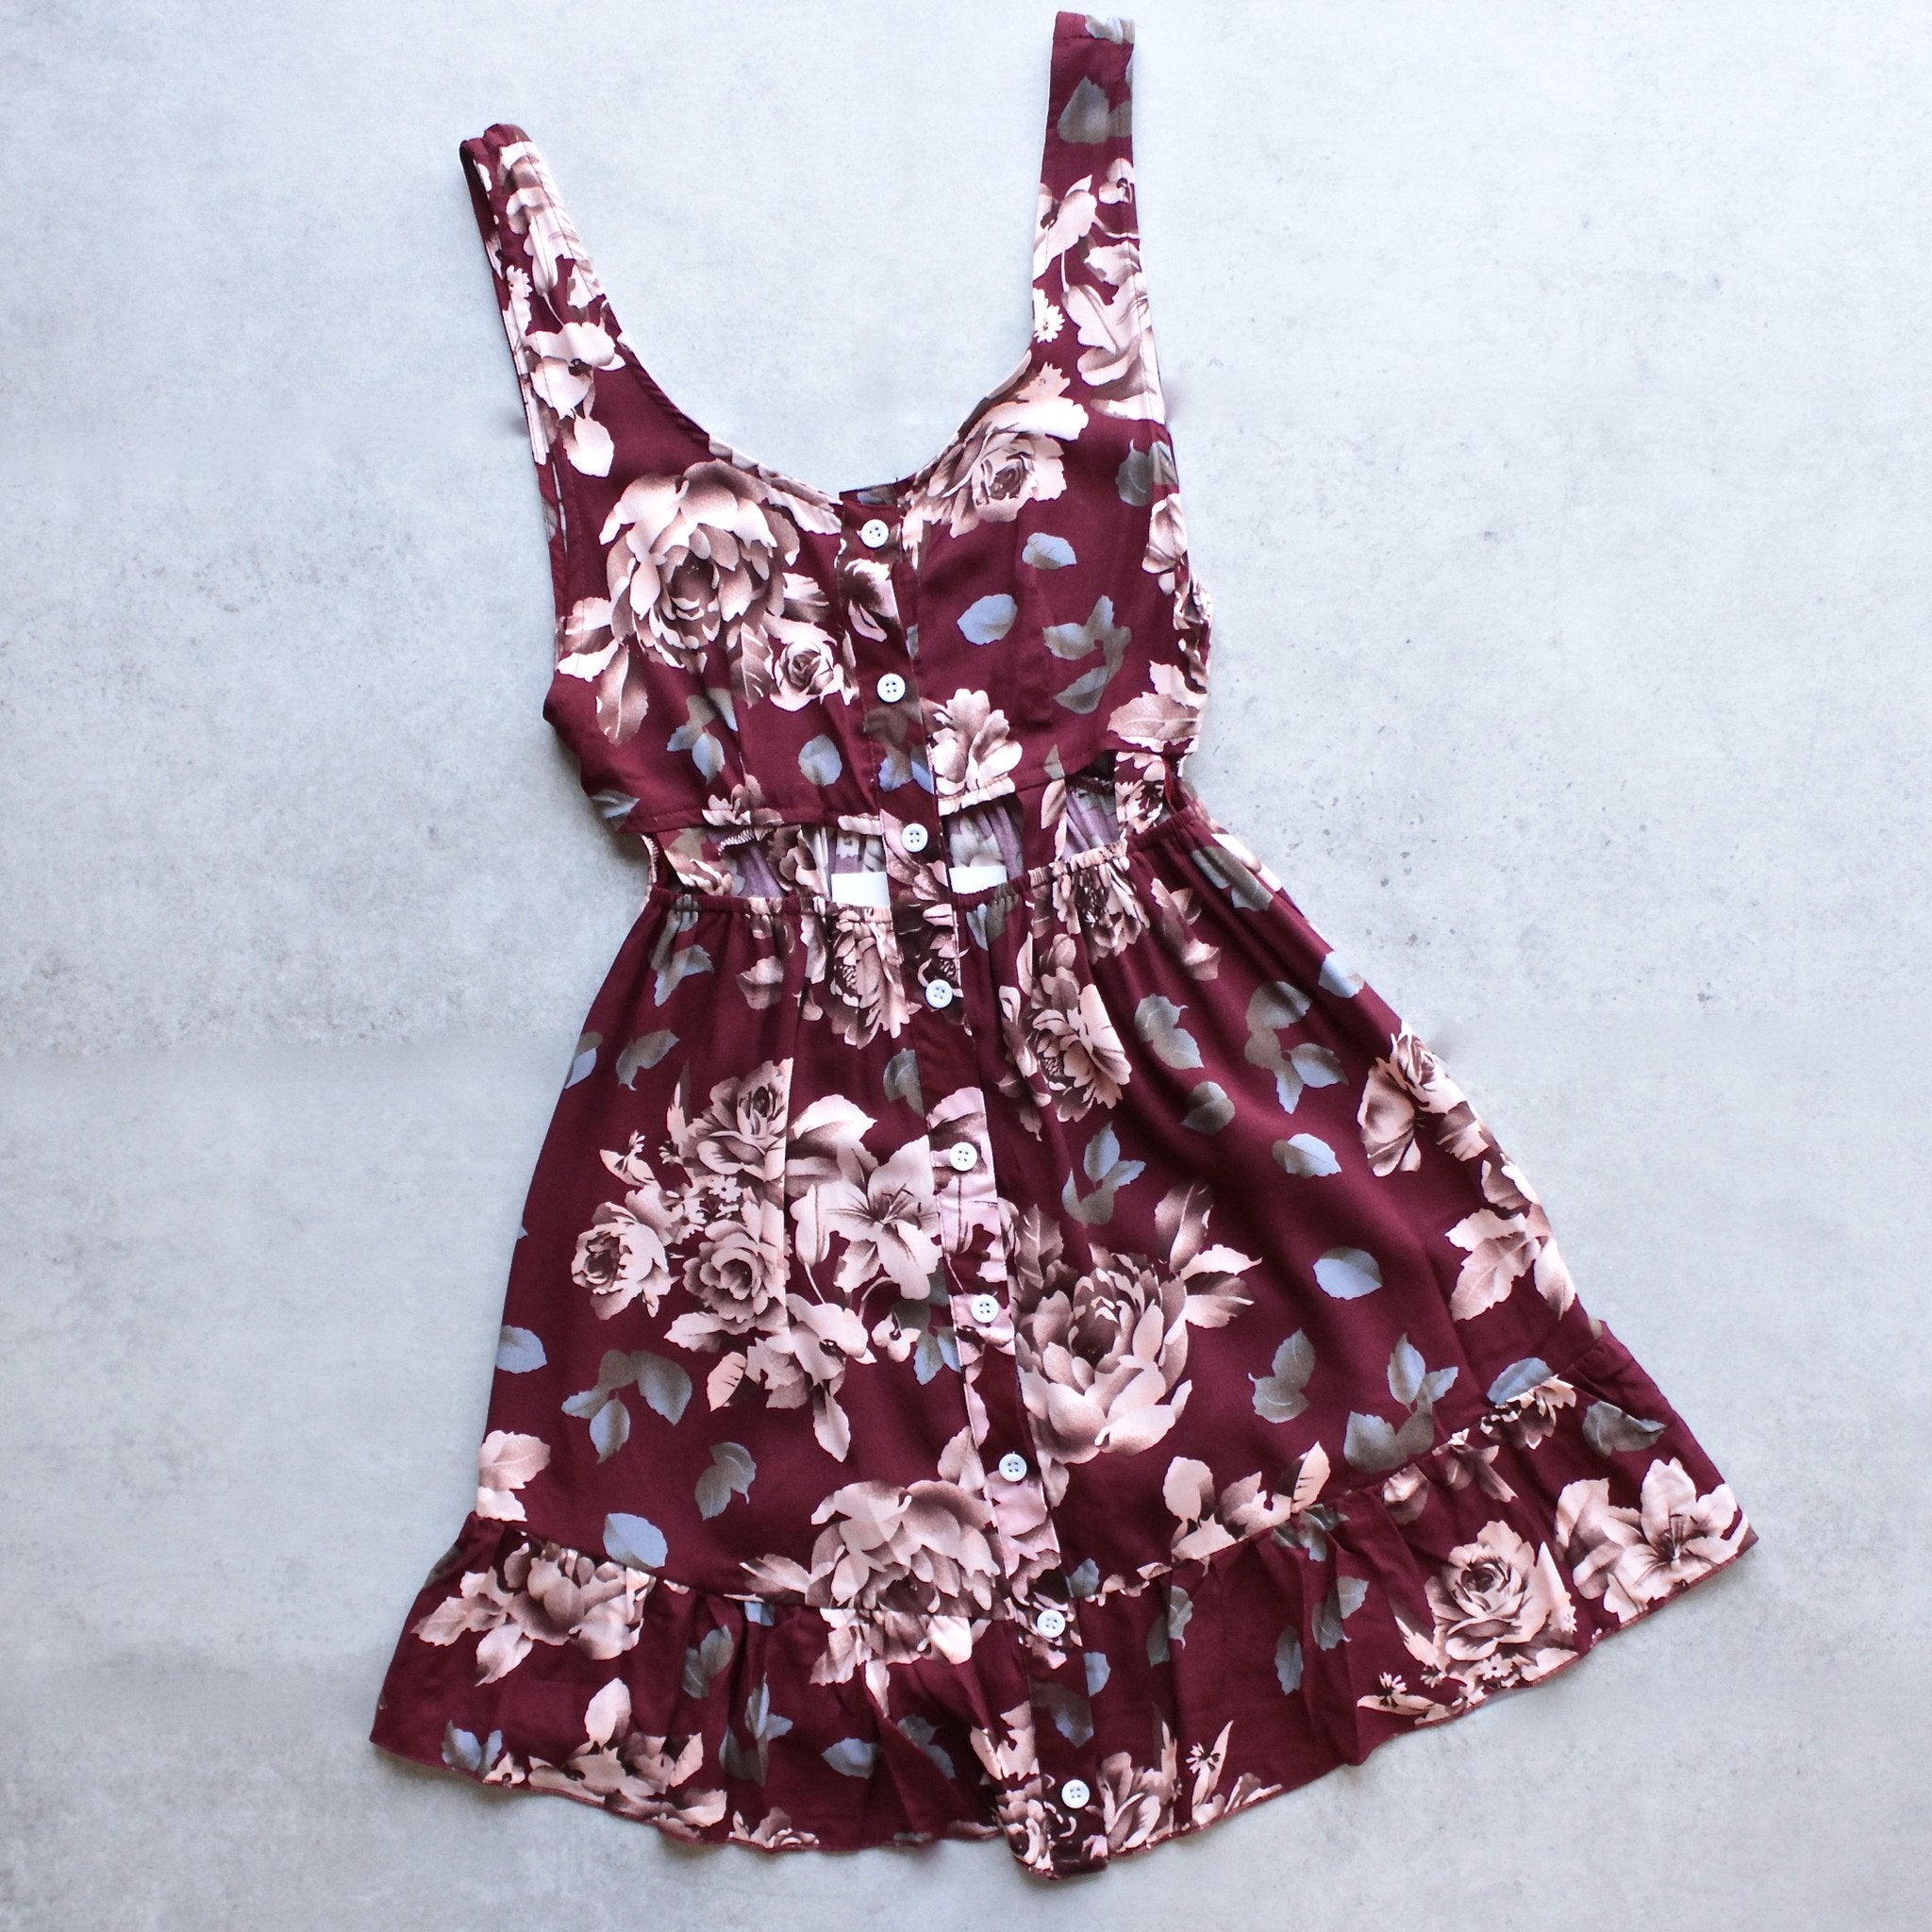 reverse - long weekend autumn floral dress in burgundy - shophearts